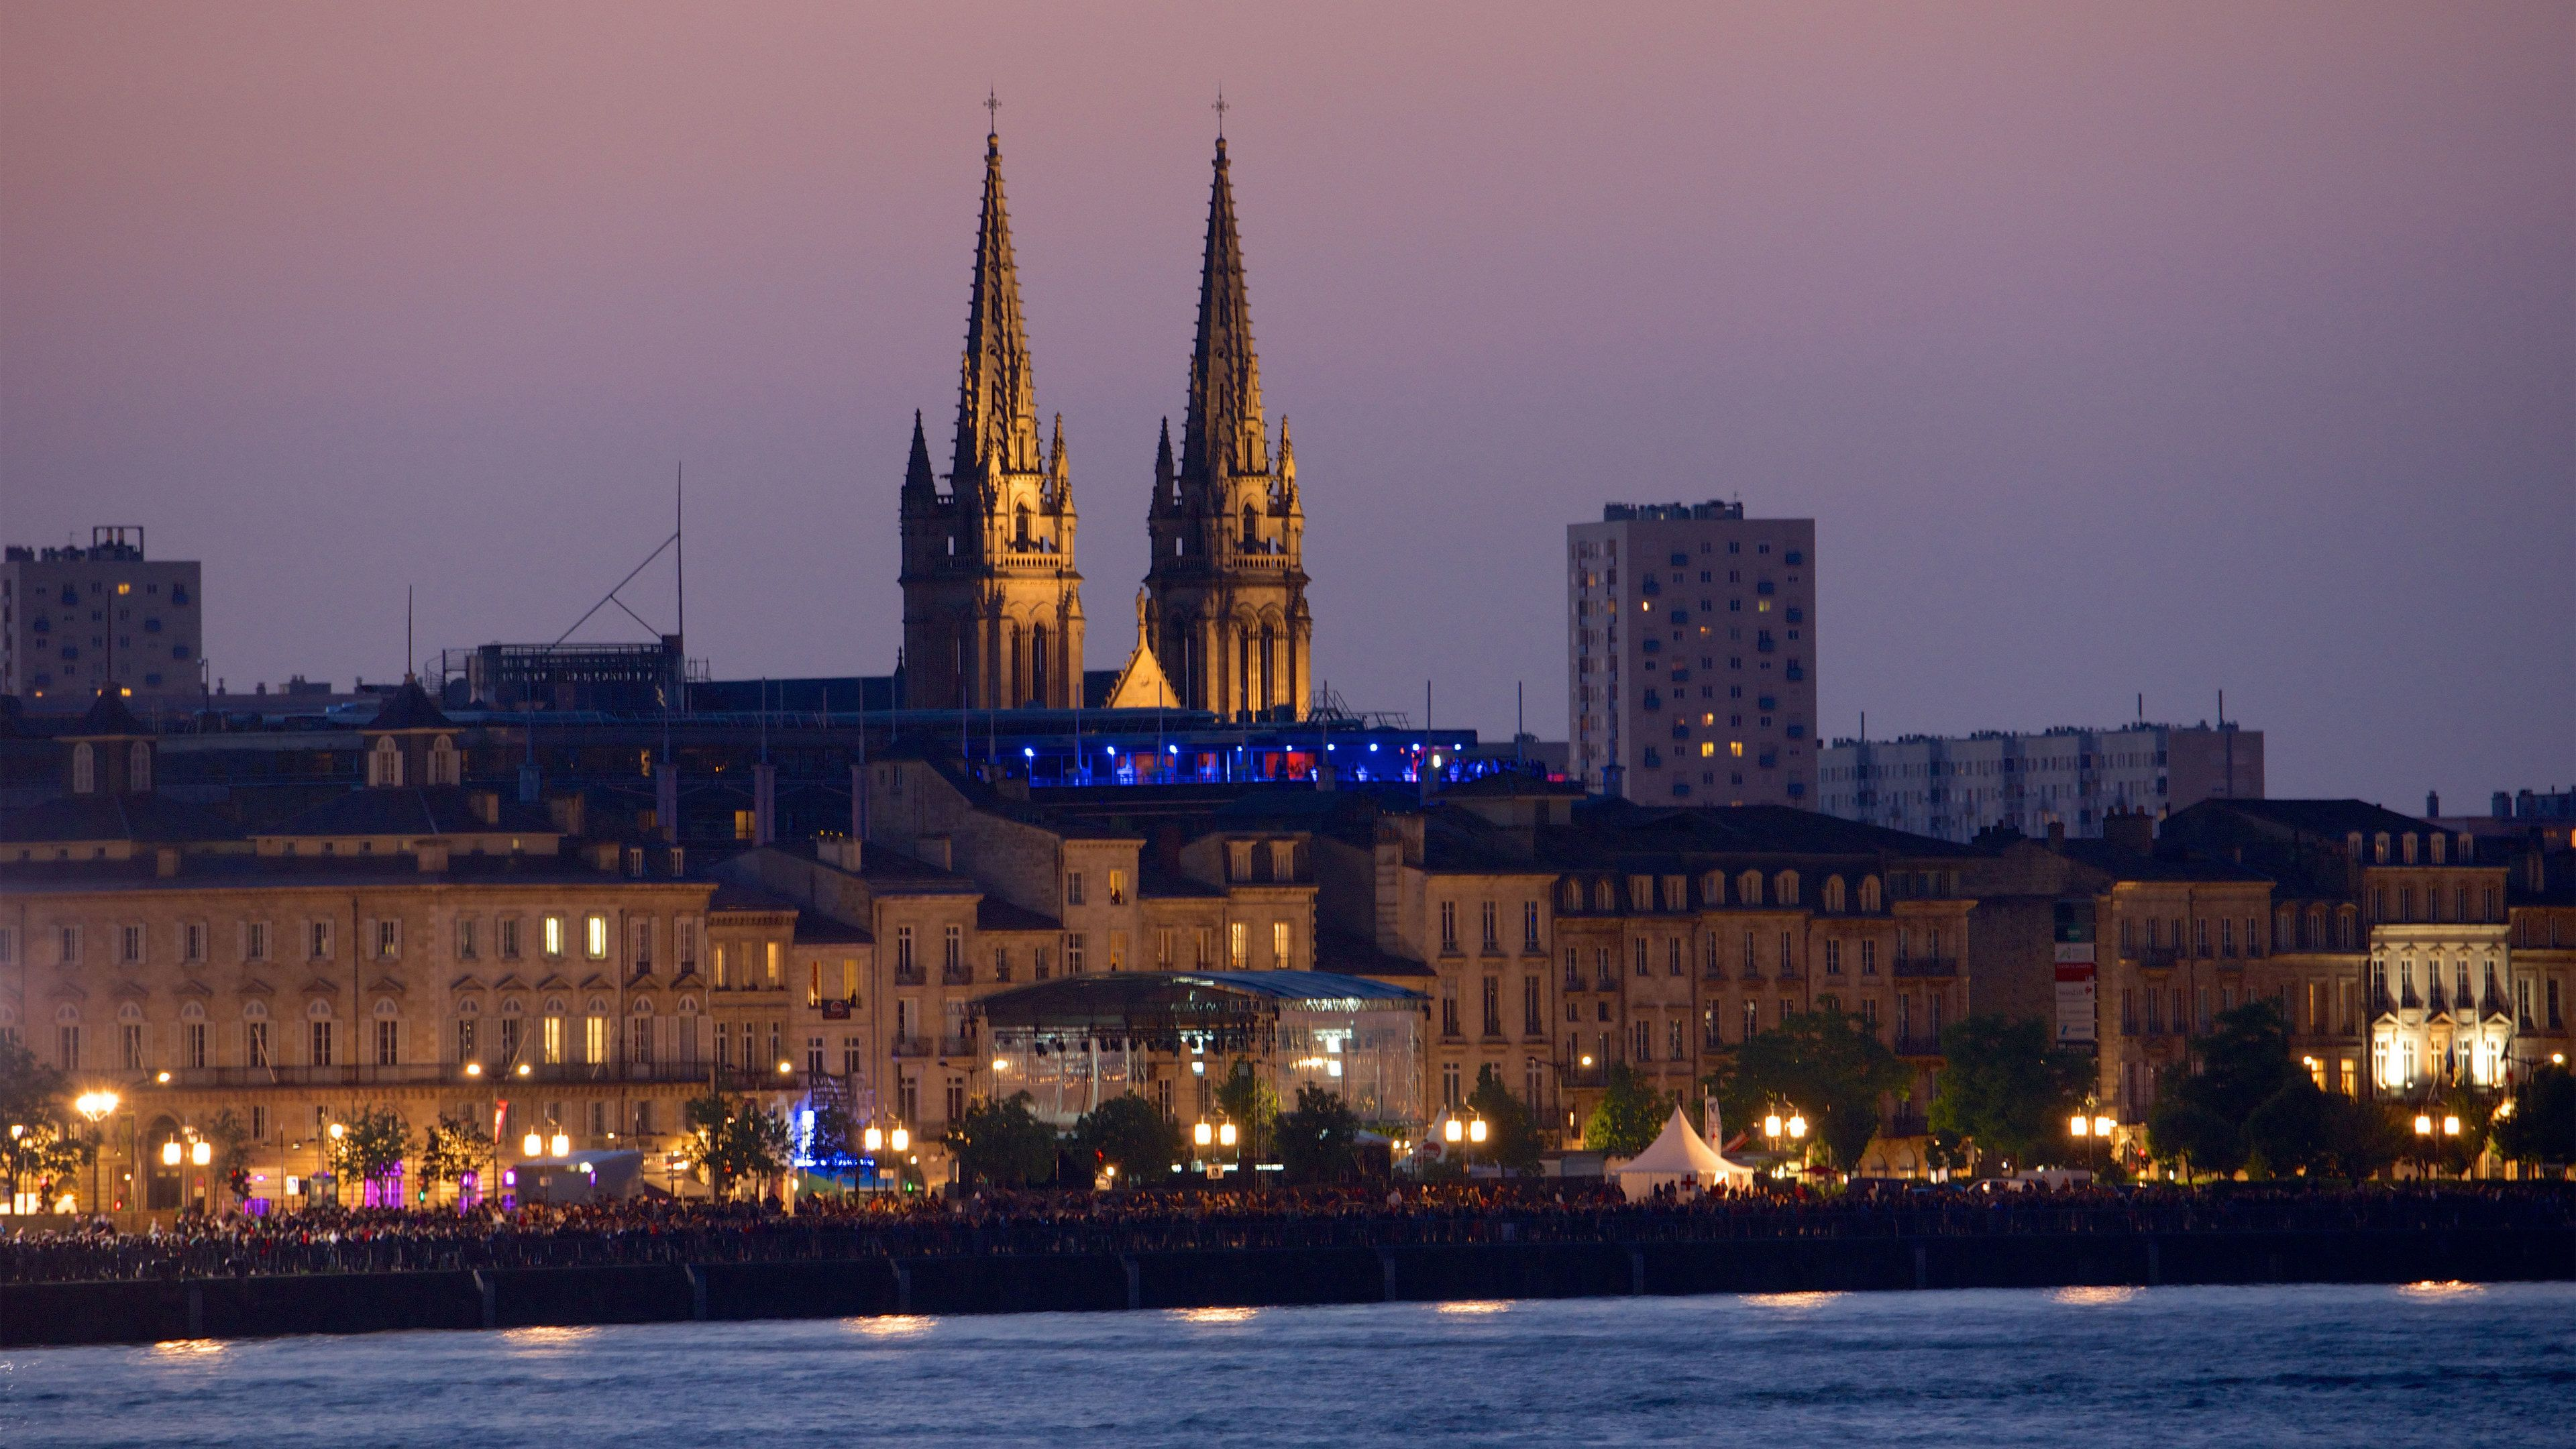 City on the rivers edge at night in Bordeaux